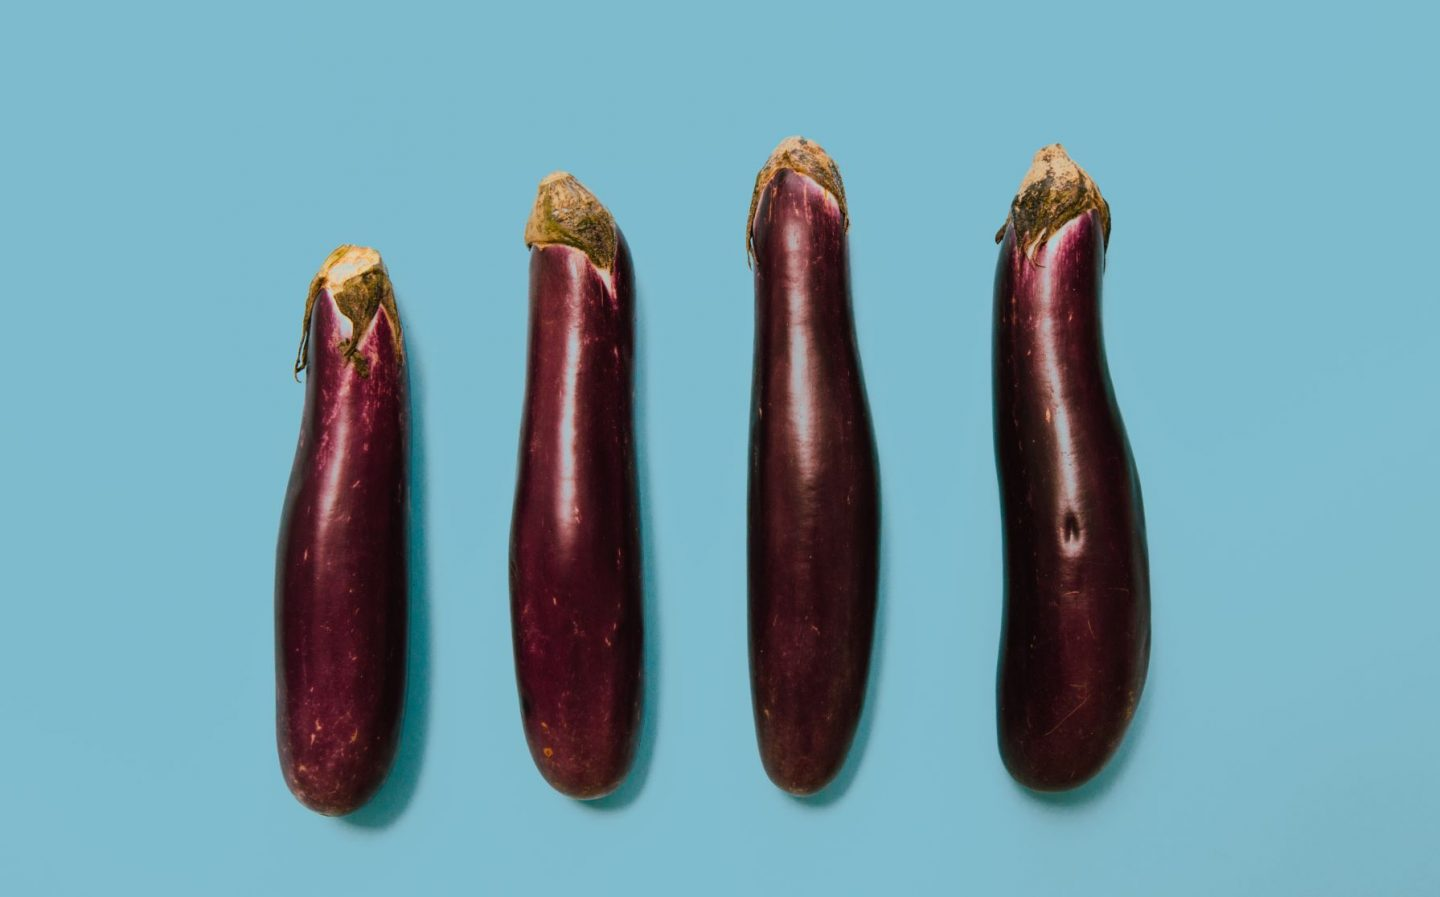 different sized aubergines in a line, as a metaphor for comparing lives!